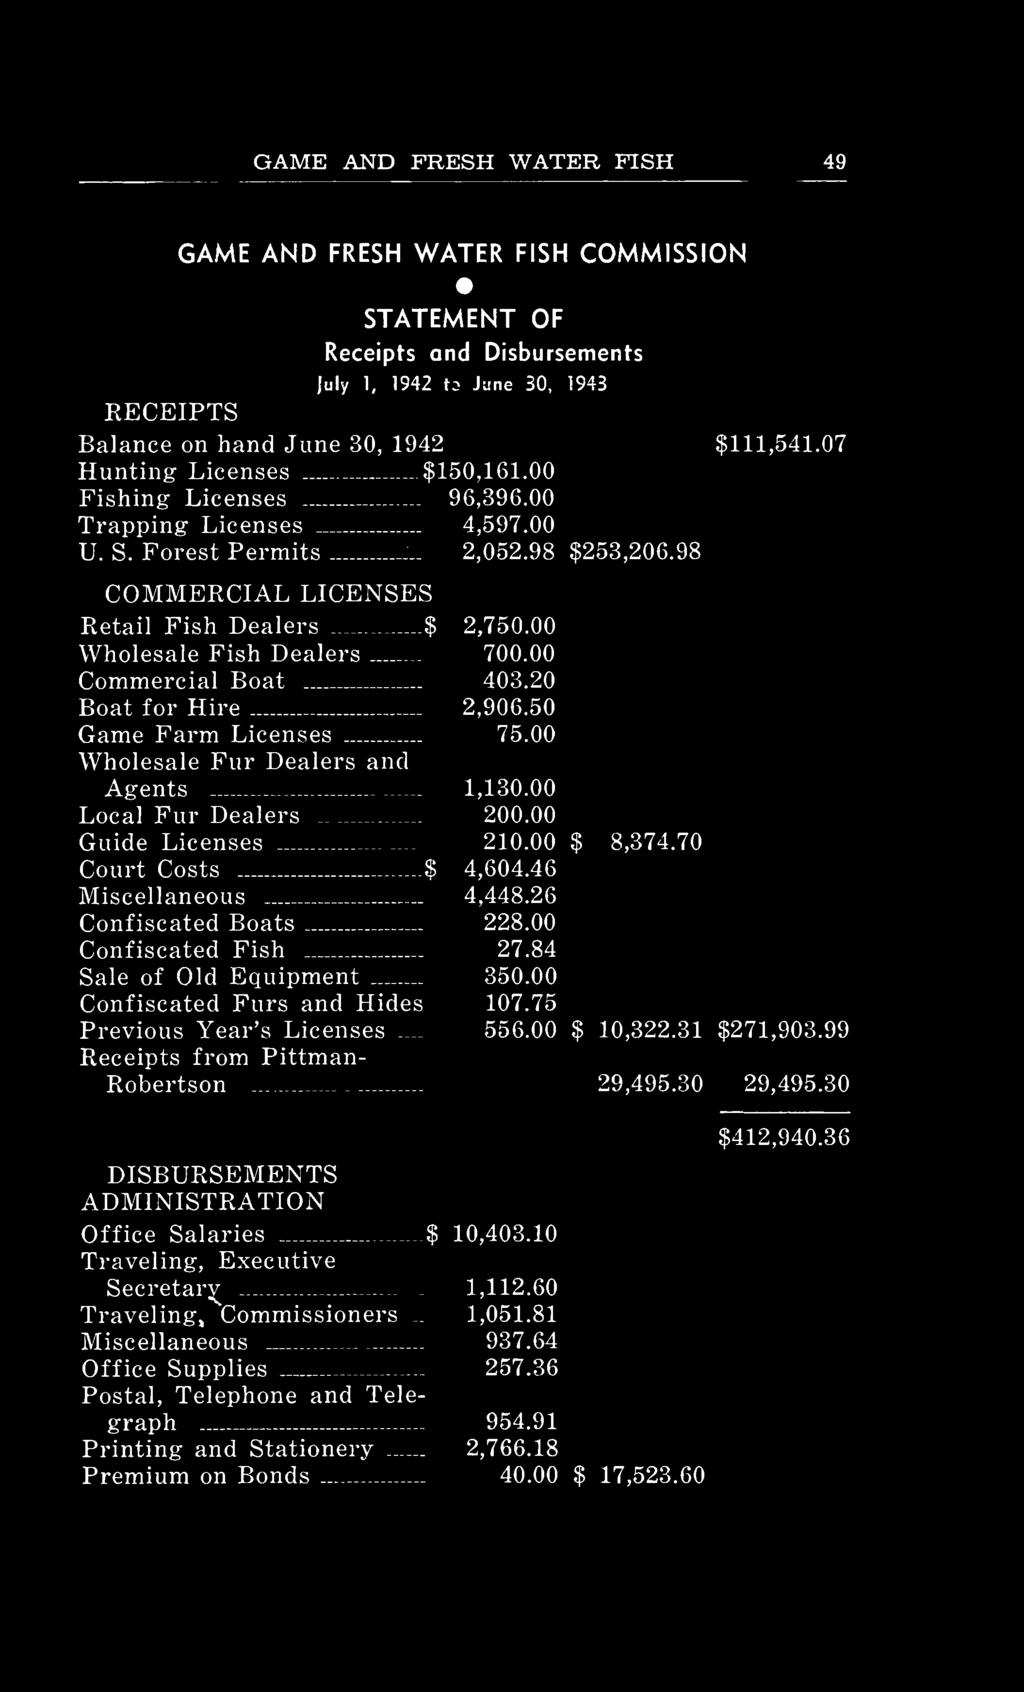 GAME AND FRESH WATER FISH 49 GAME AND FRESH WATER FISH COMMISSION STATEMENT OF Receipts and Disbursements July 1, 1942 t- June 30, 1943 RECEIPTS Balance on hand June 30, 1942 $111,541.